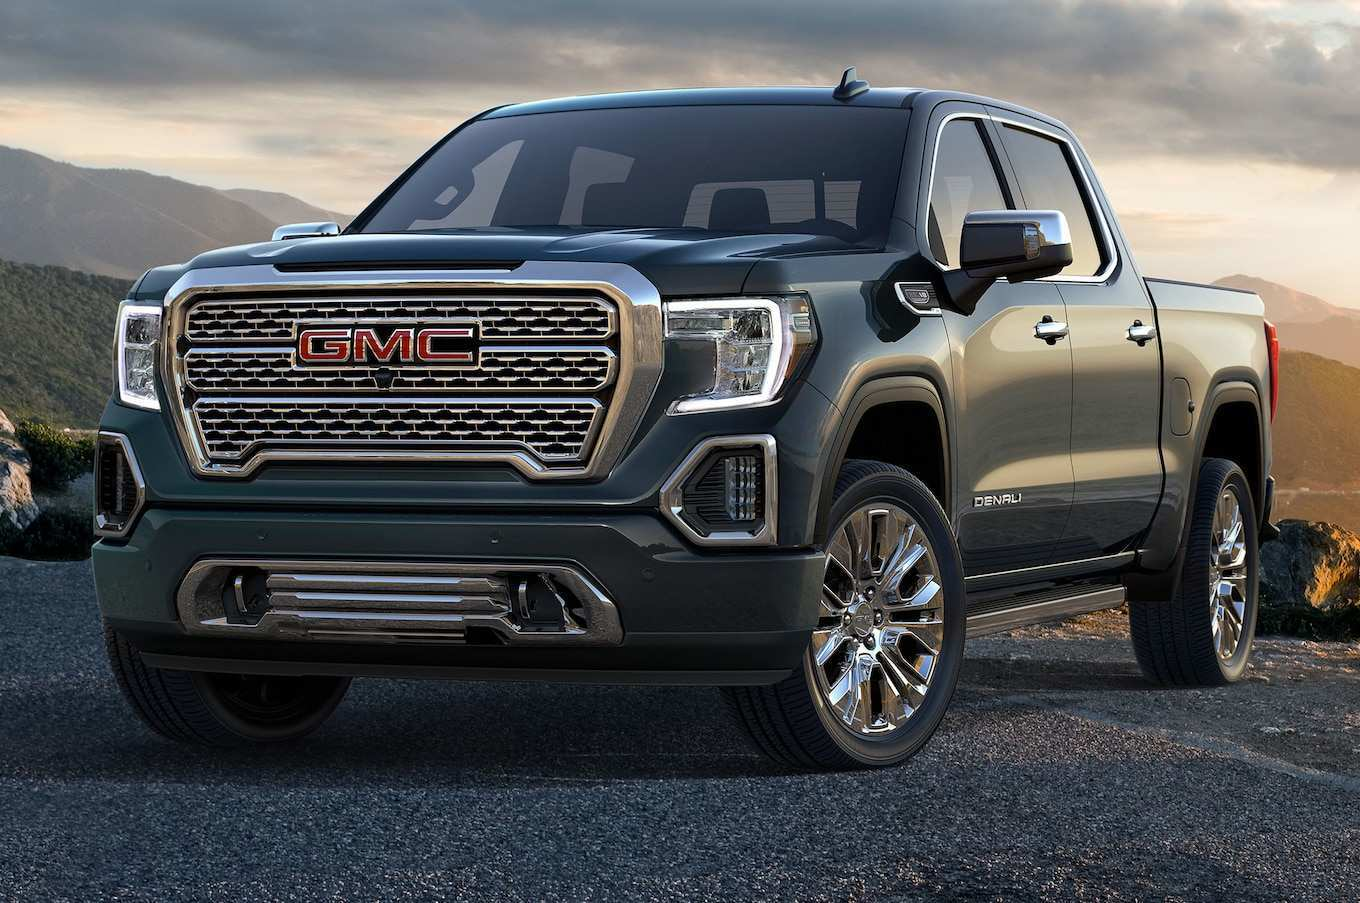 87 The Best 2019 GMC Sierra Concept